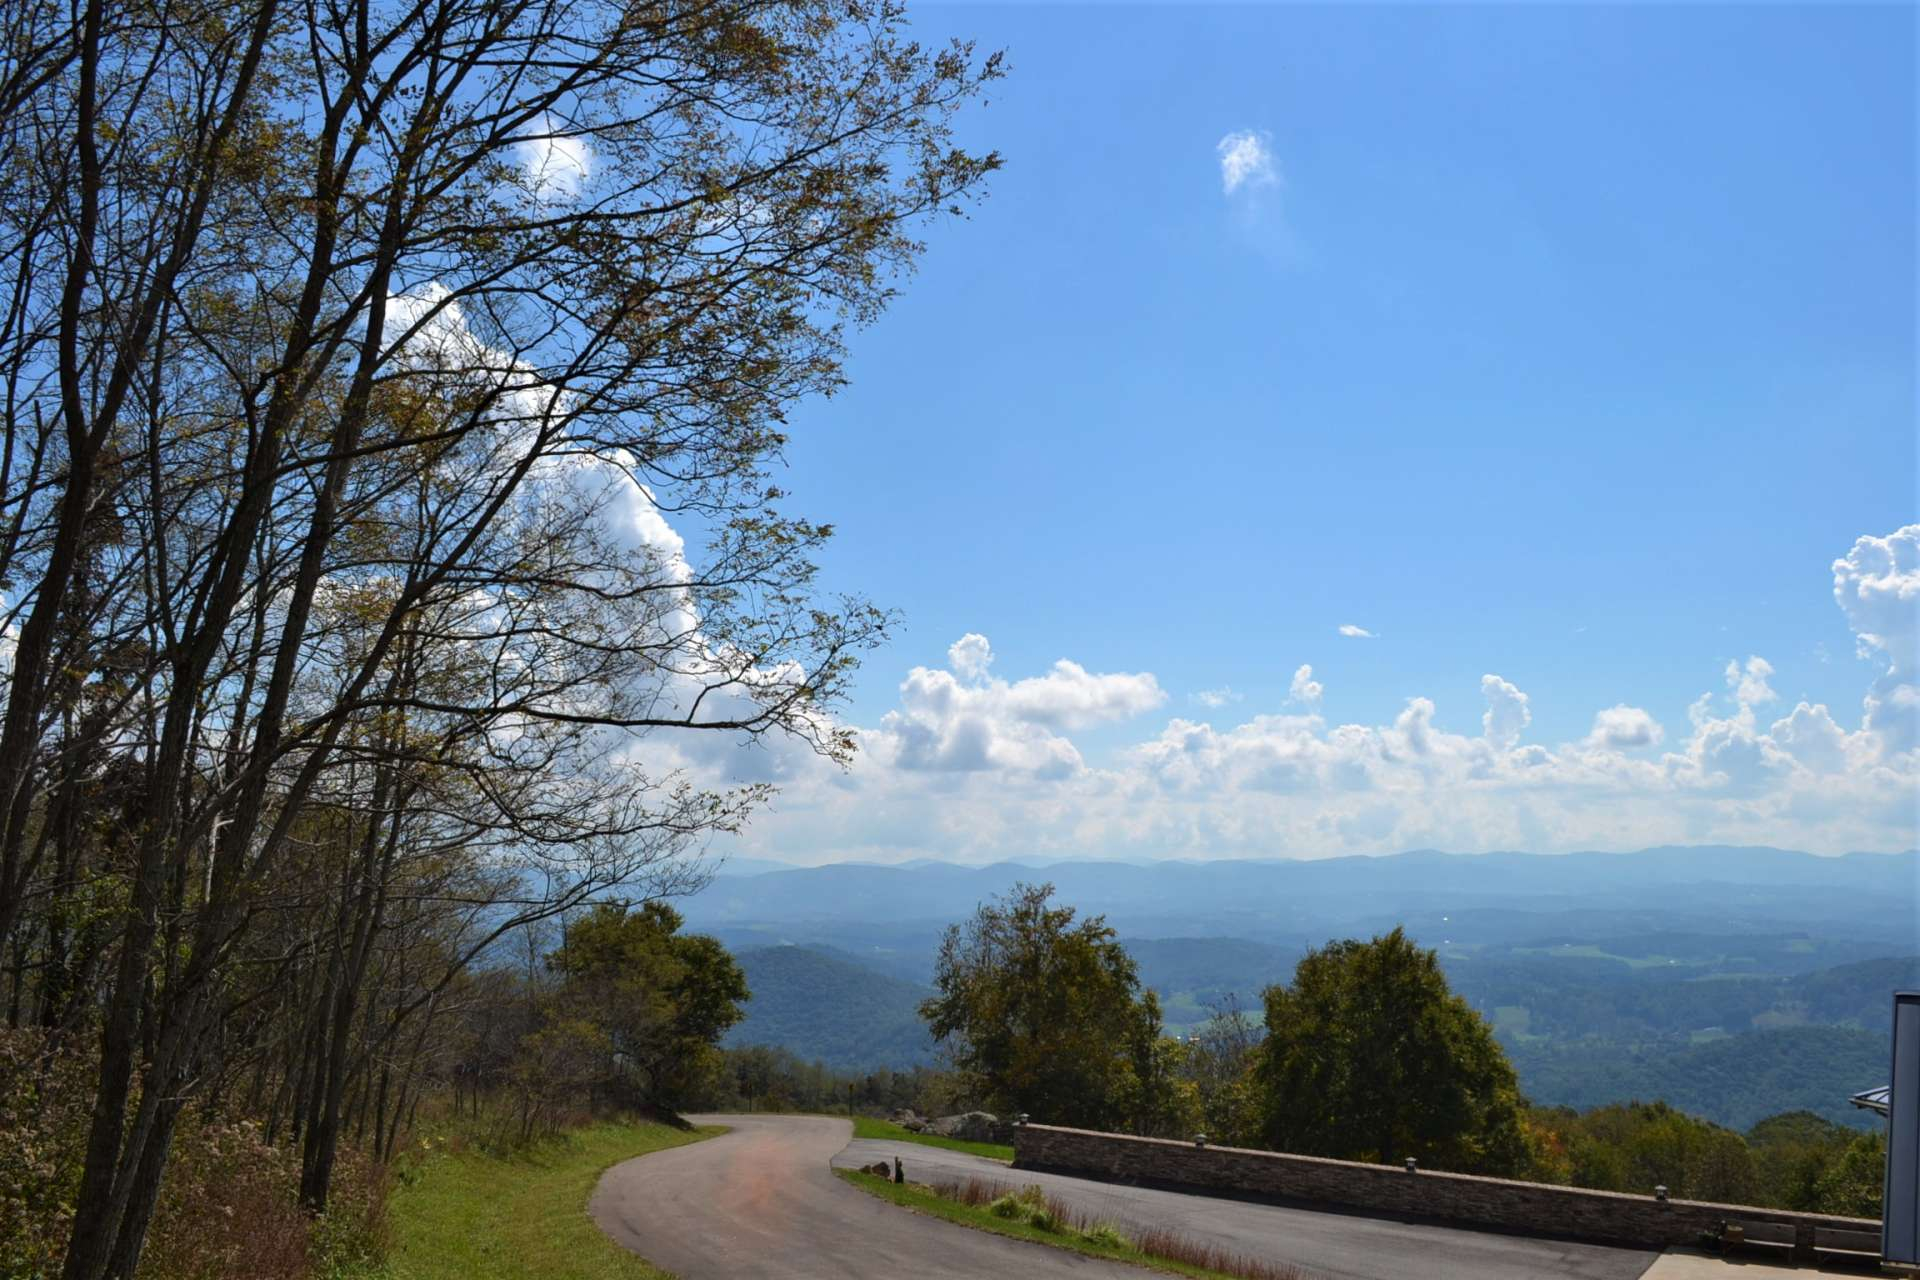 This photo was taken at the road frontage.  These views can be enjoyed from the porches and decks of your own mountain escape built  upon this premier  tract.